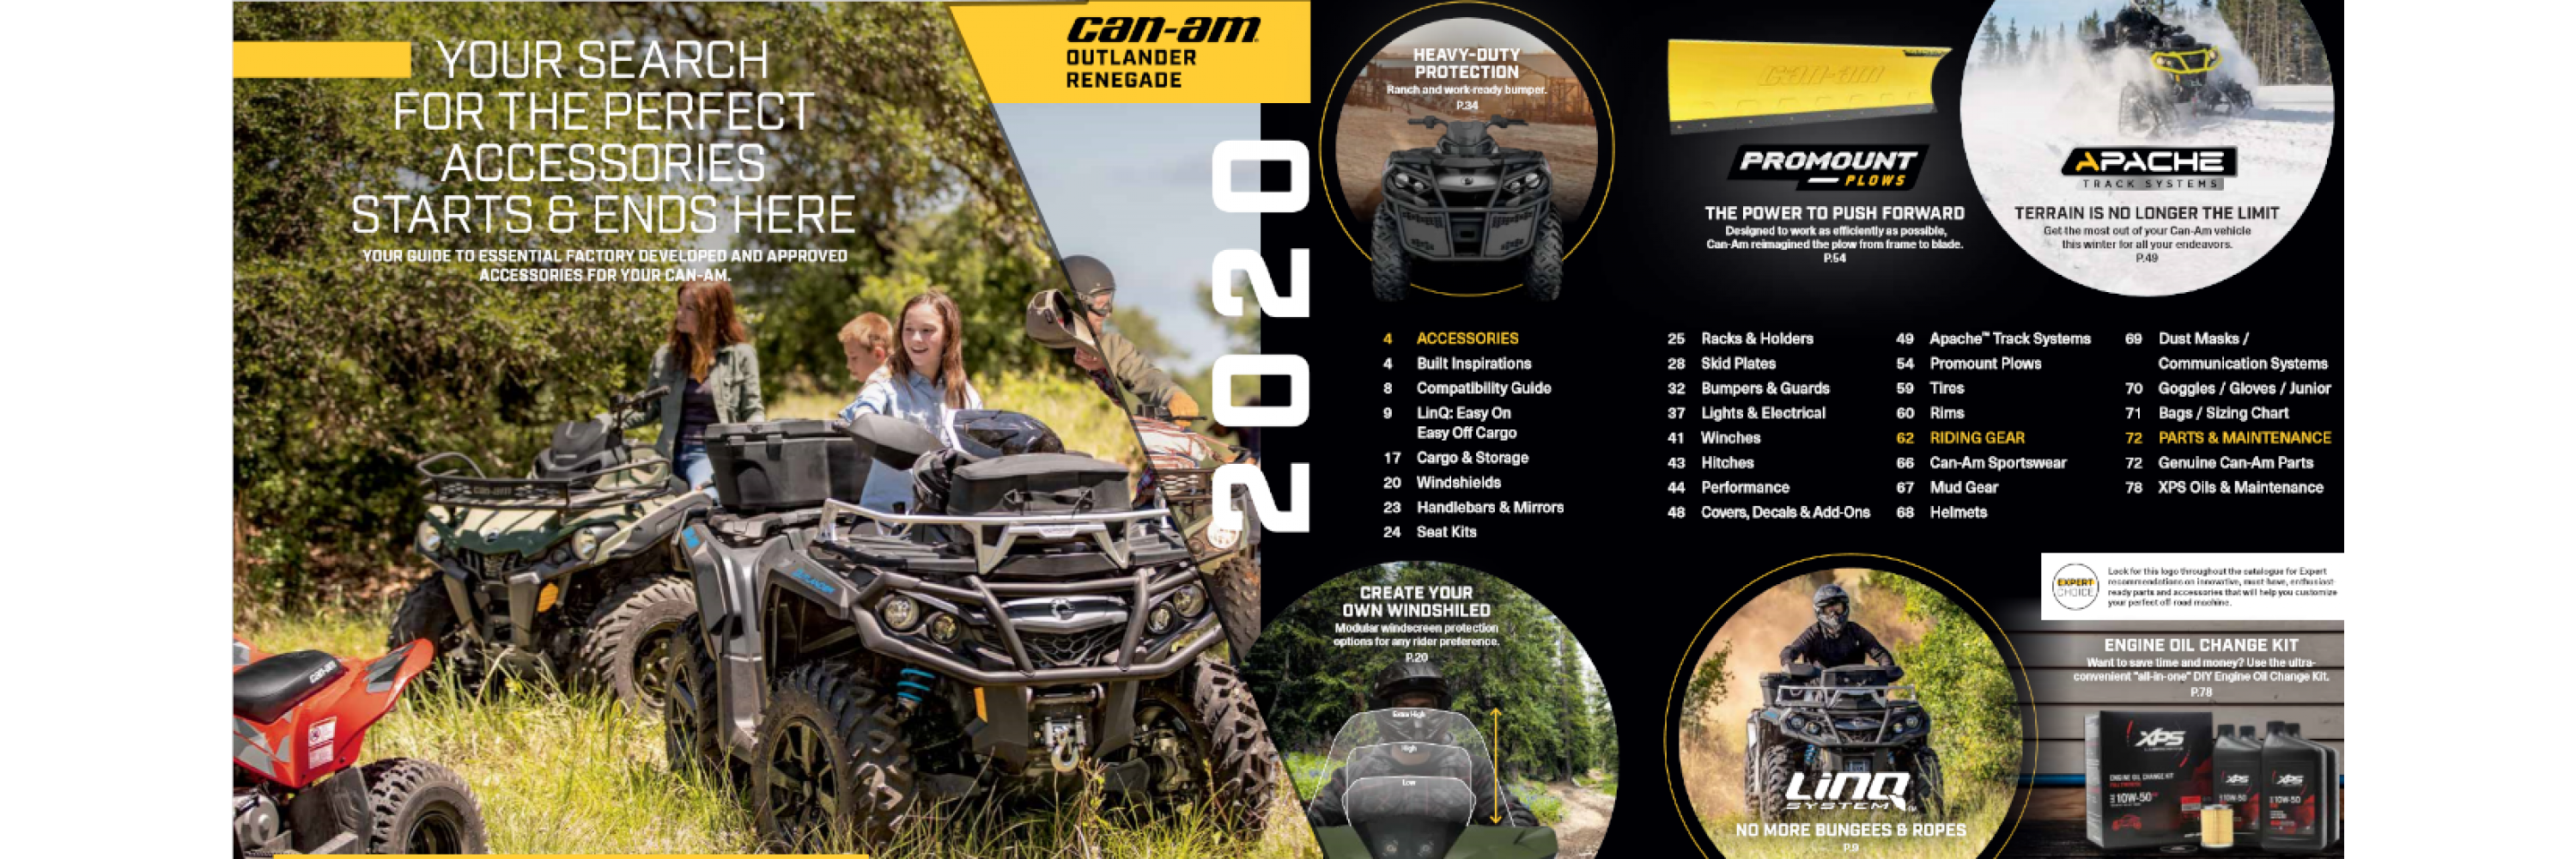 CATALOG CAN-AM